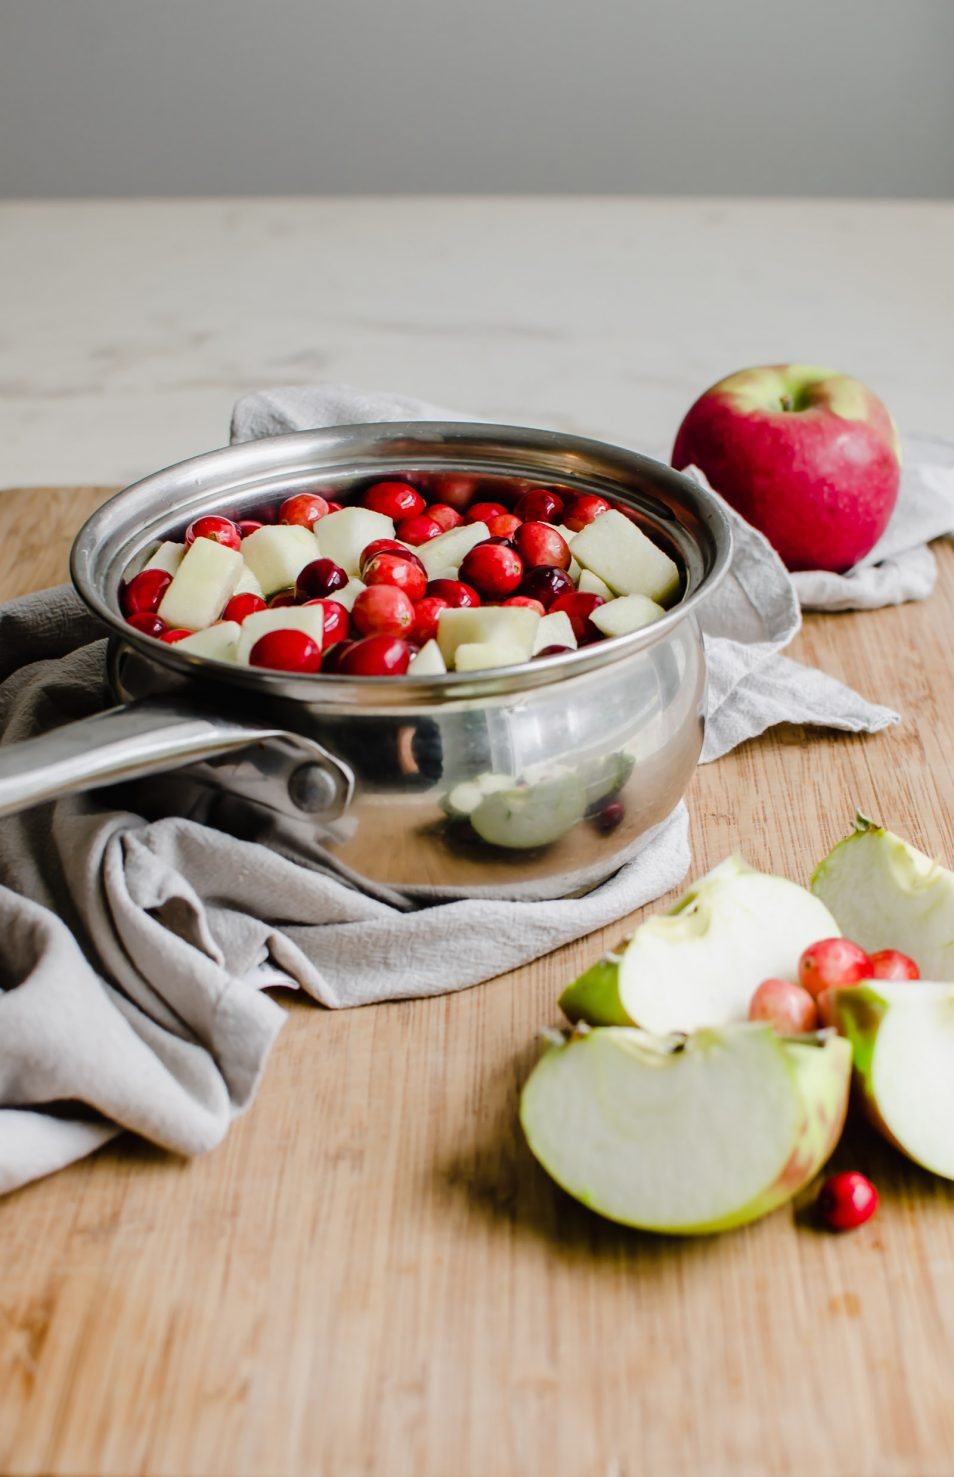 A saucepan with fresh cranberries and sliced apple sitting on a cutting board with a grey dish towel underneath.